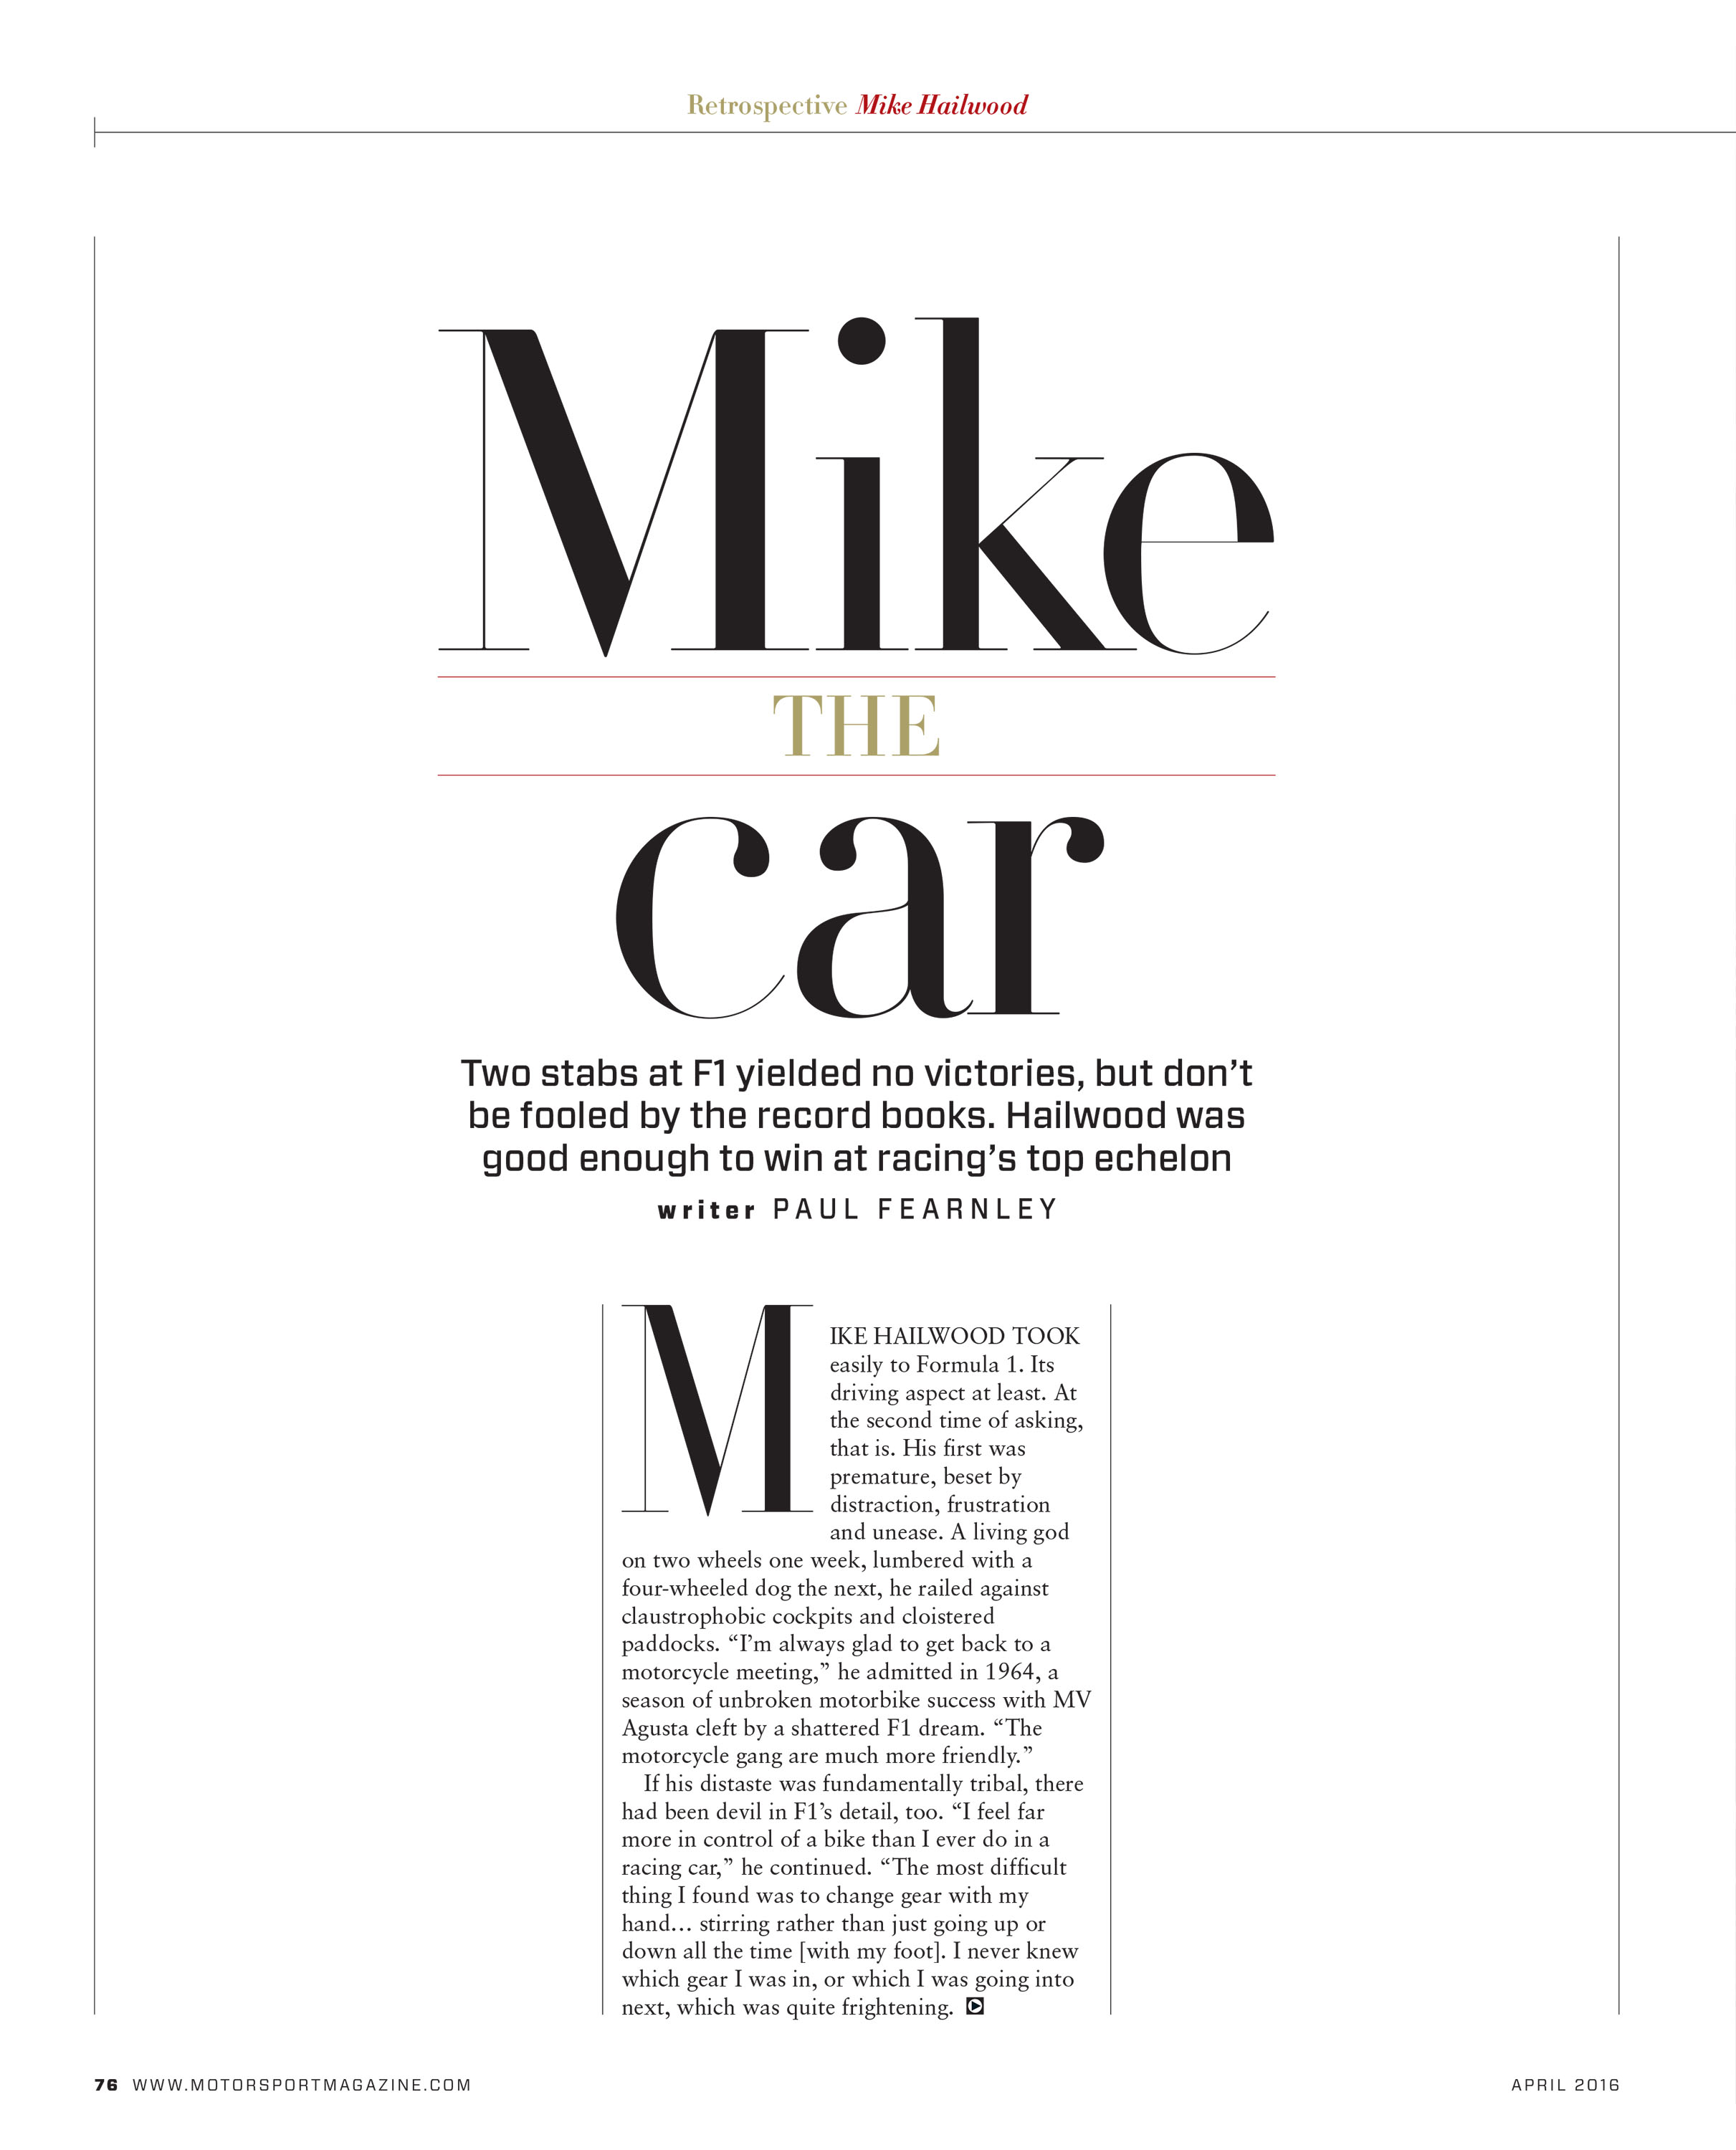 Mike the car image